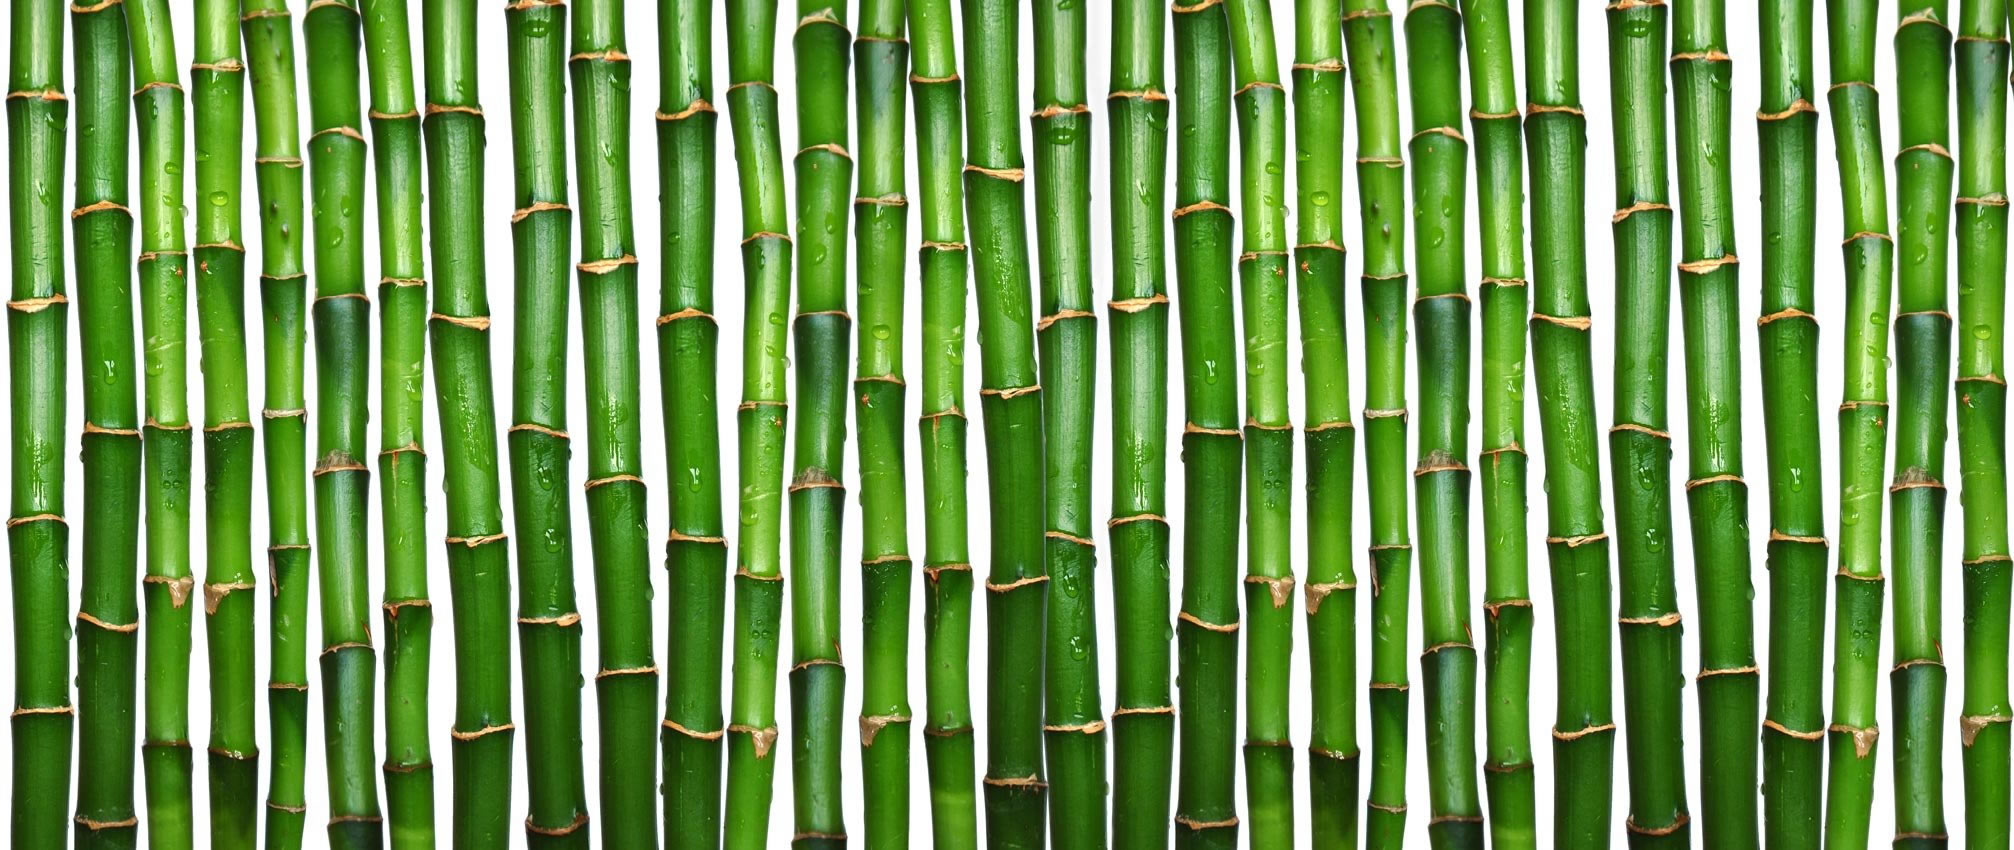 green bamboo, texture bamboo , green bamboo texture, photo, background